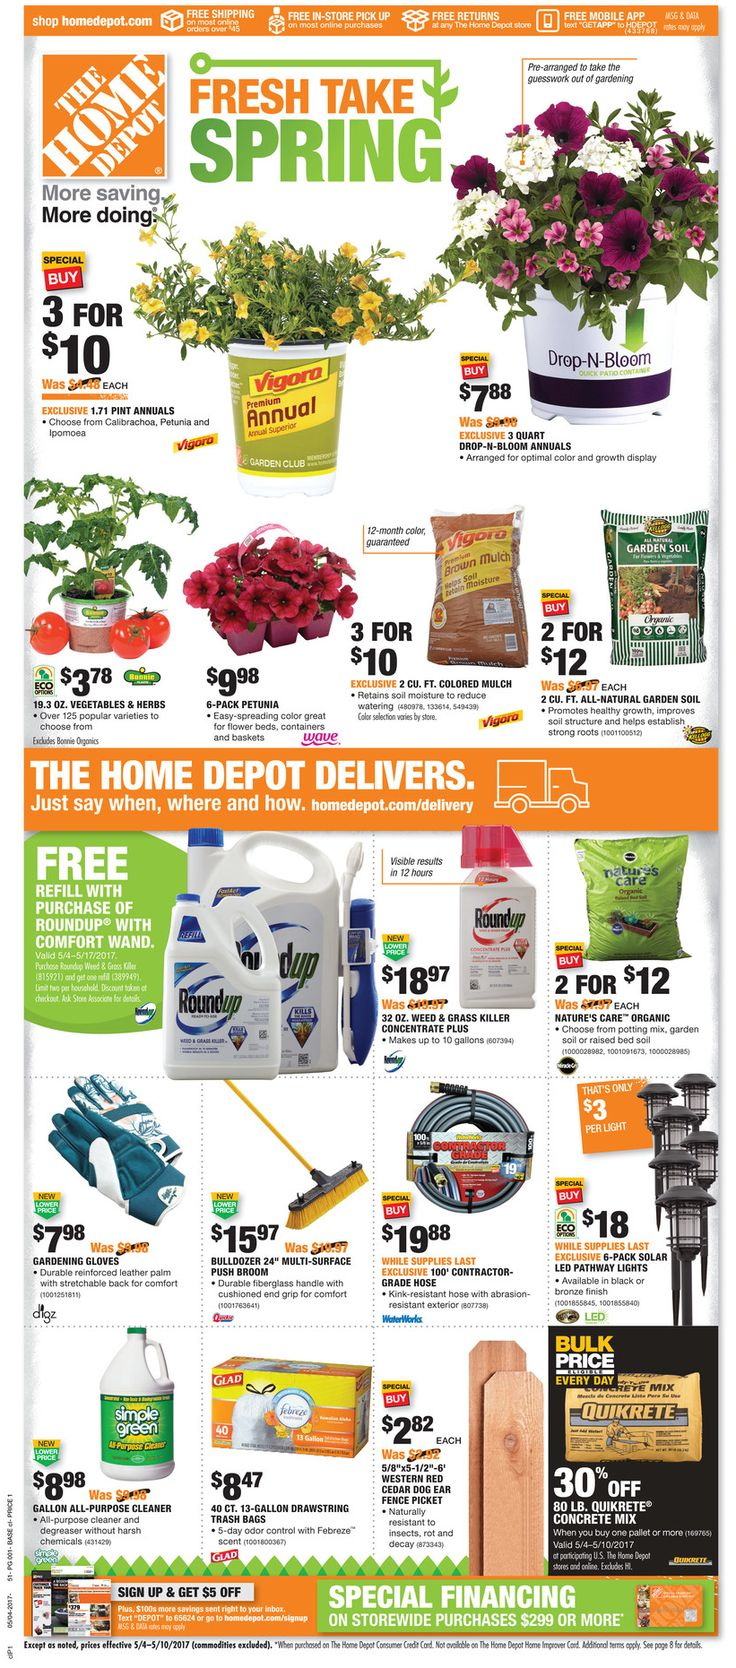 Home Depot Weekly Ad May 4 - 10, 2017 - http://www.olcatalog.com/home-garden/home-depot-weekly-ad.html